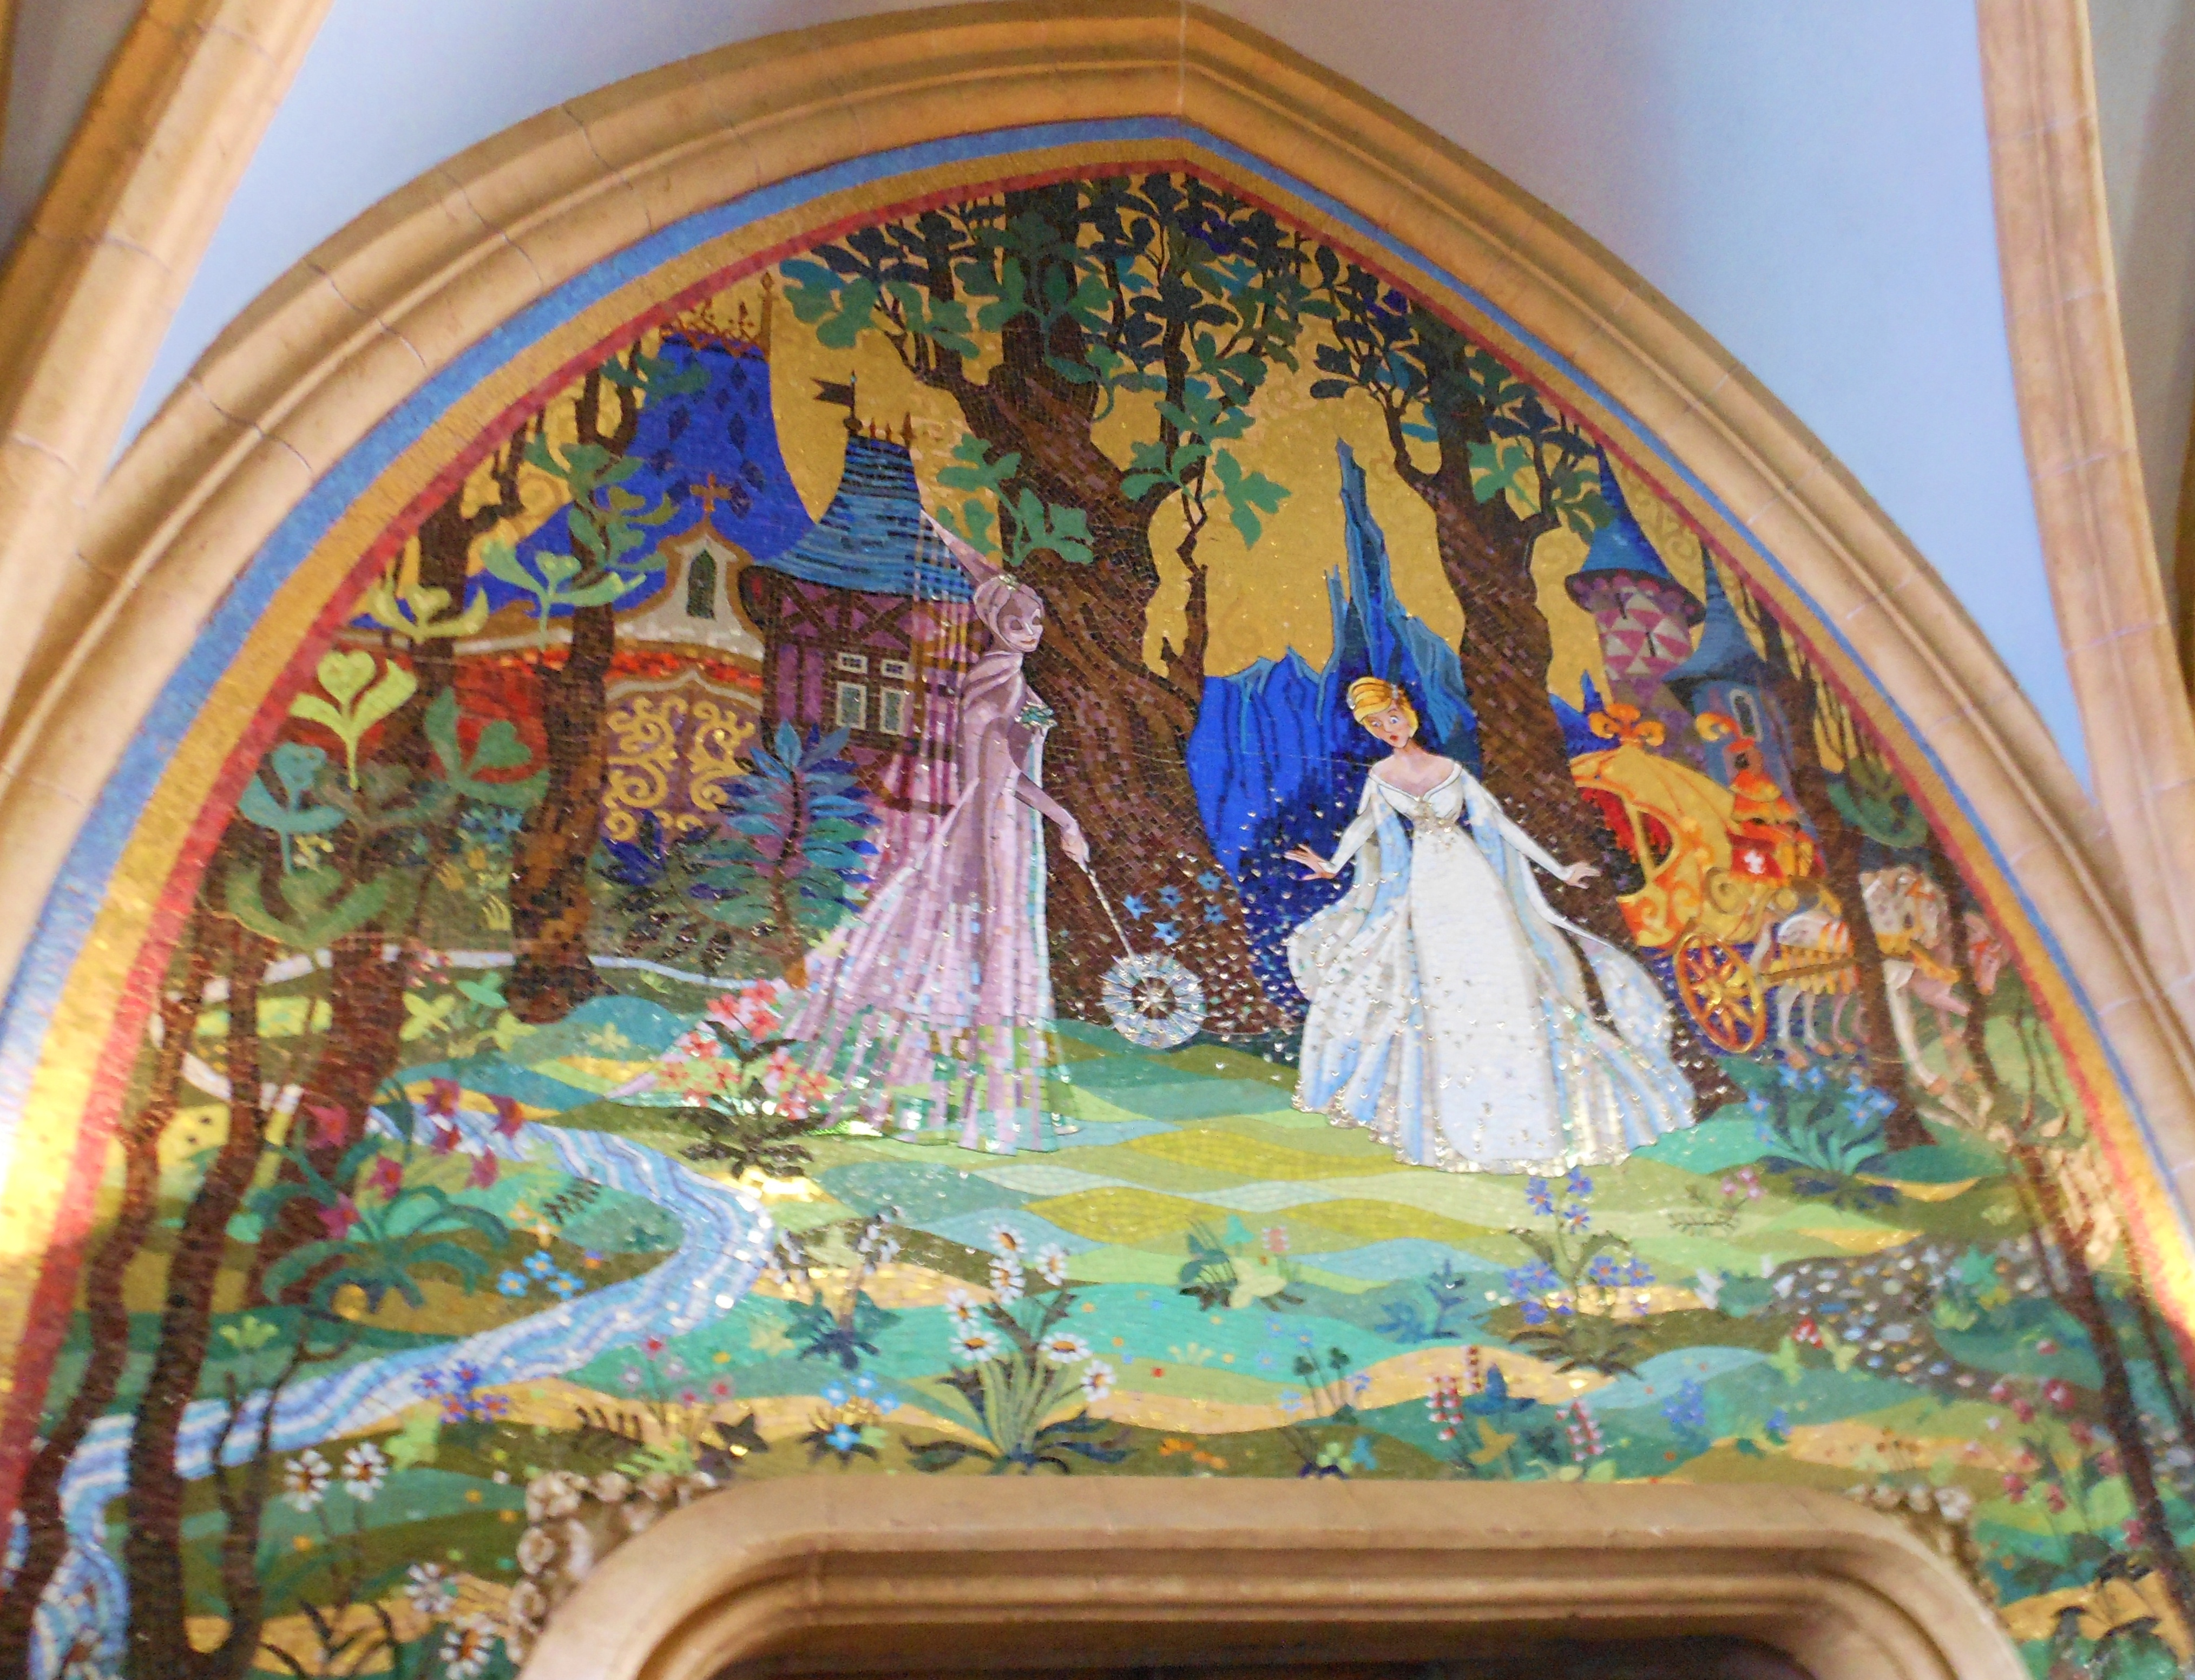 Cinderella castle mural pictures to pin on pinterest for Disney castle mural wallpaper